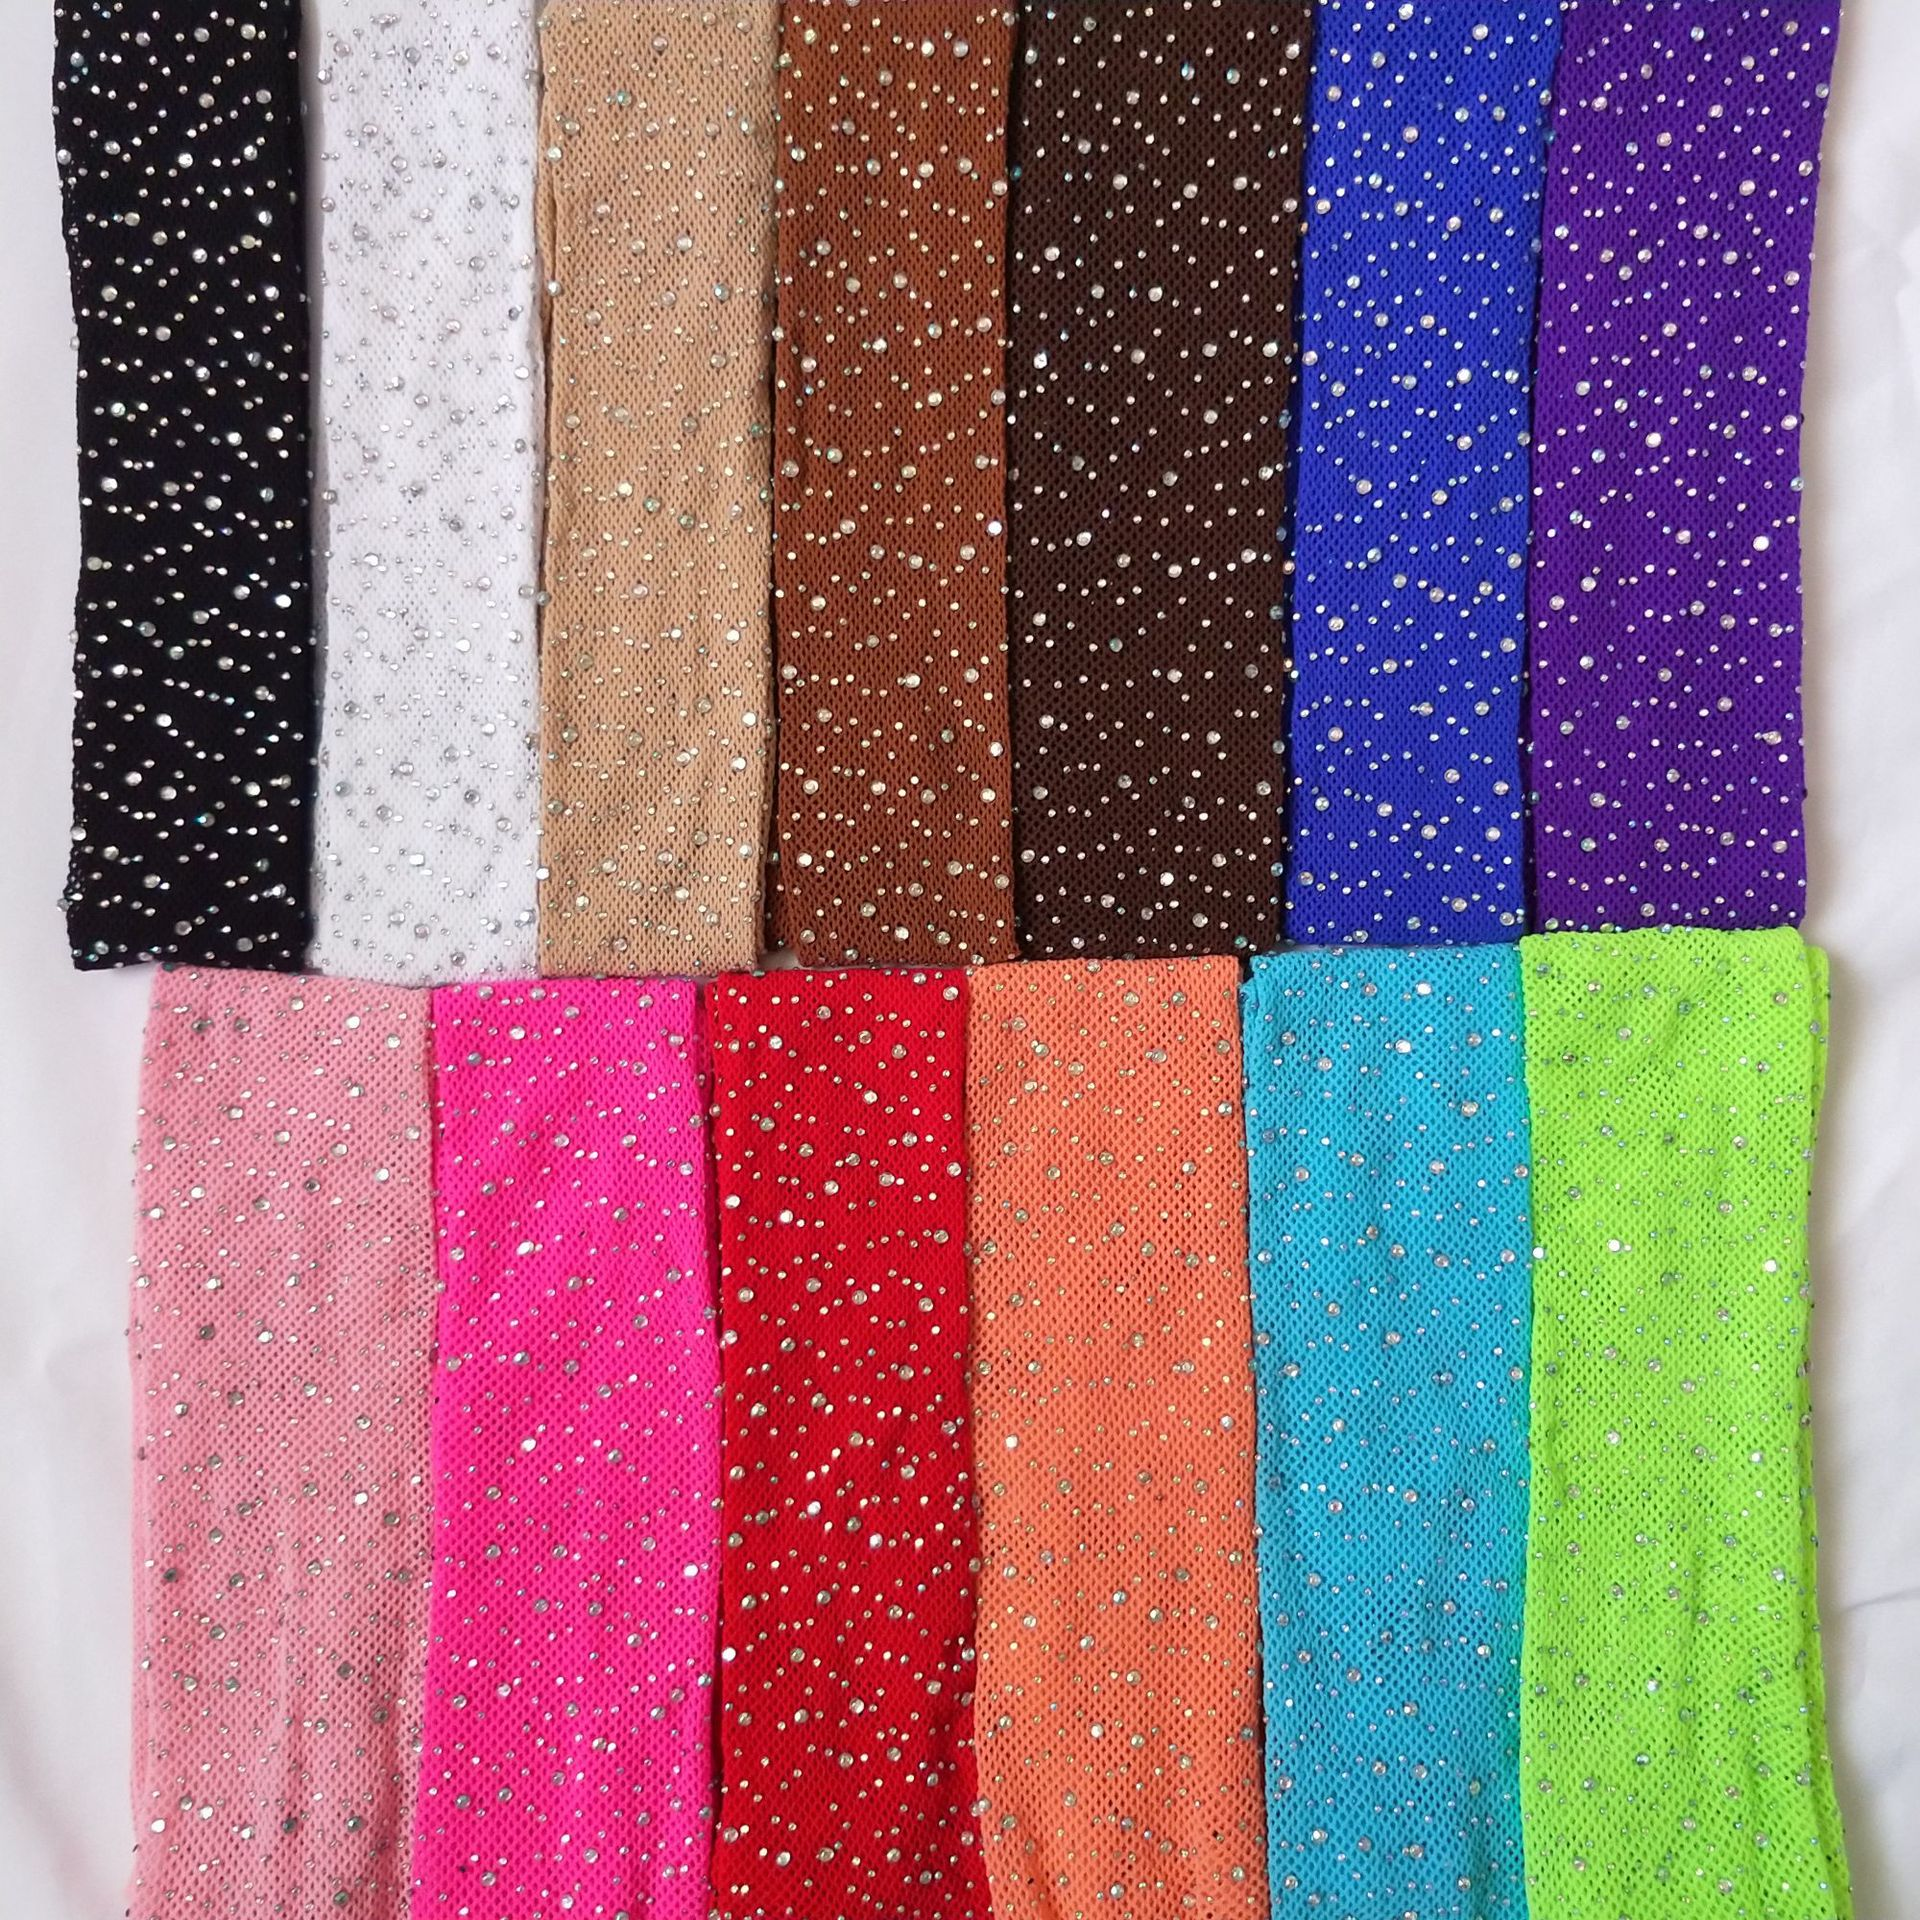 RTS Wholesale 23 Candy Color Fashion Girls Kid Mesh Fishnet Net Pattern Rhinestone Pantyhose Baby Glitter Bling Bedazzled Tights